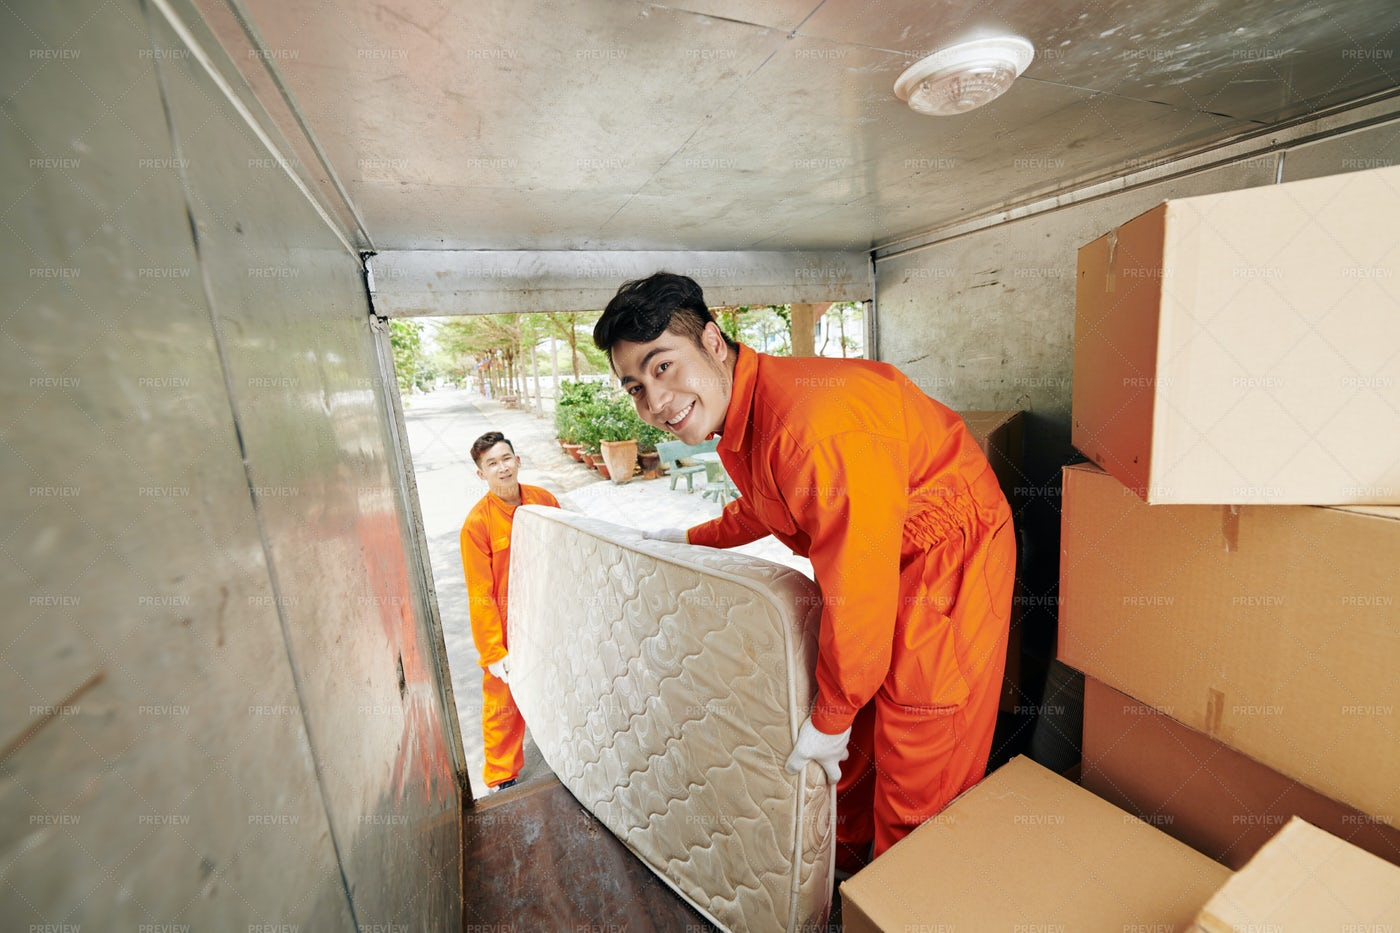 Workers Loading Mattress In Truck: Stock Photos